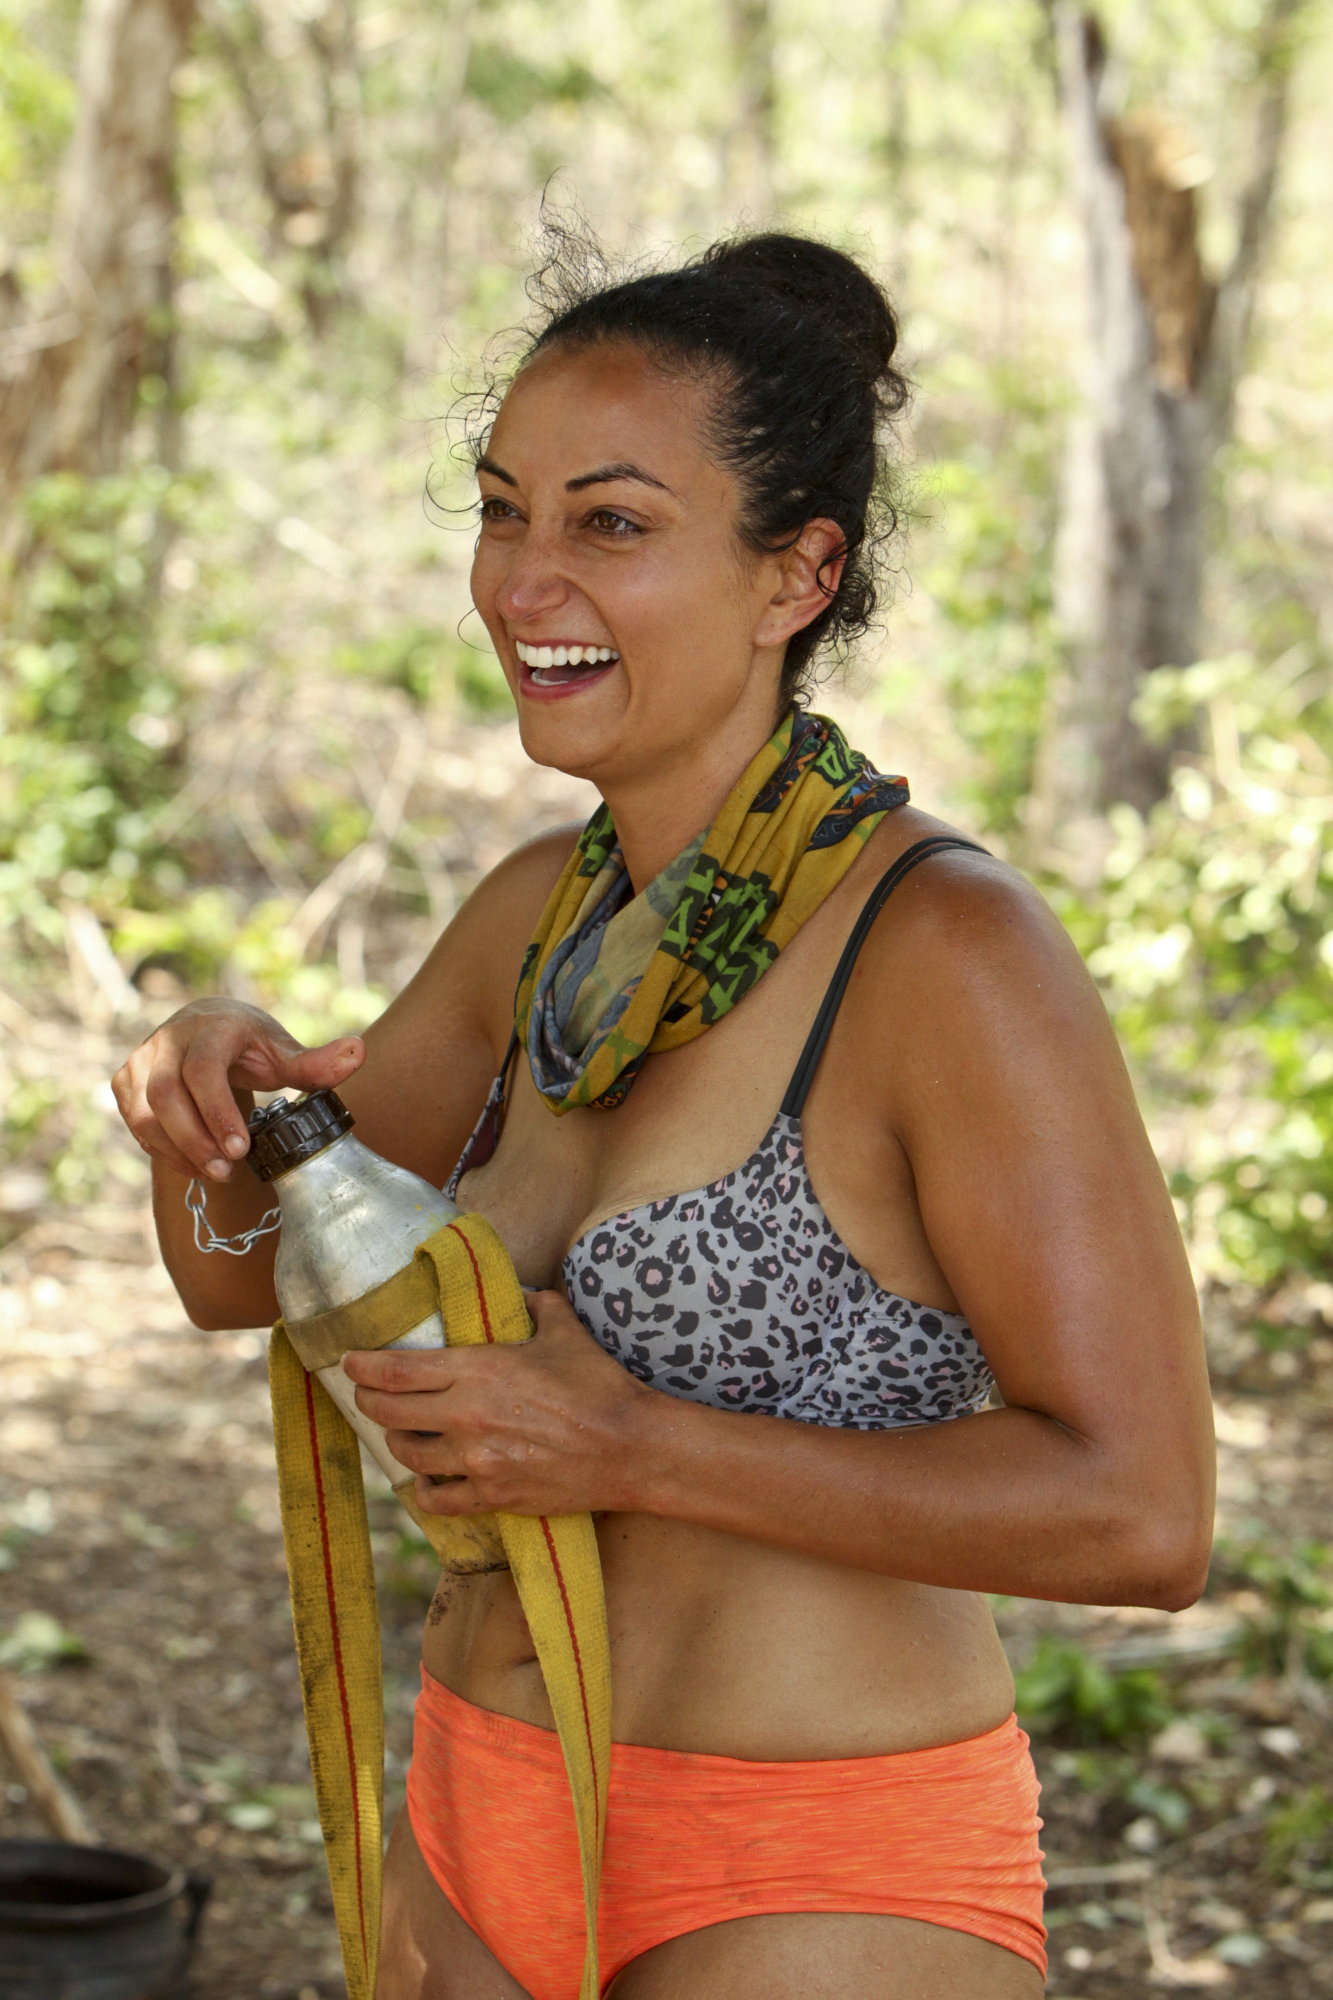 Shirin enjoys her Survivor experience